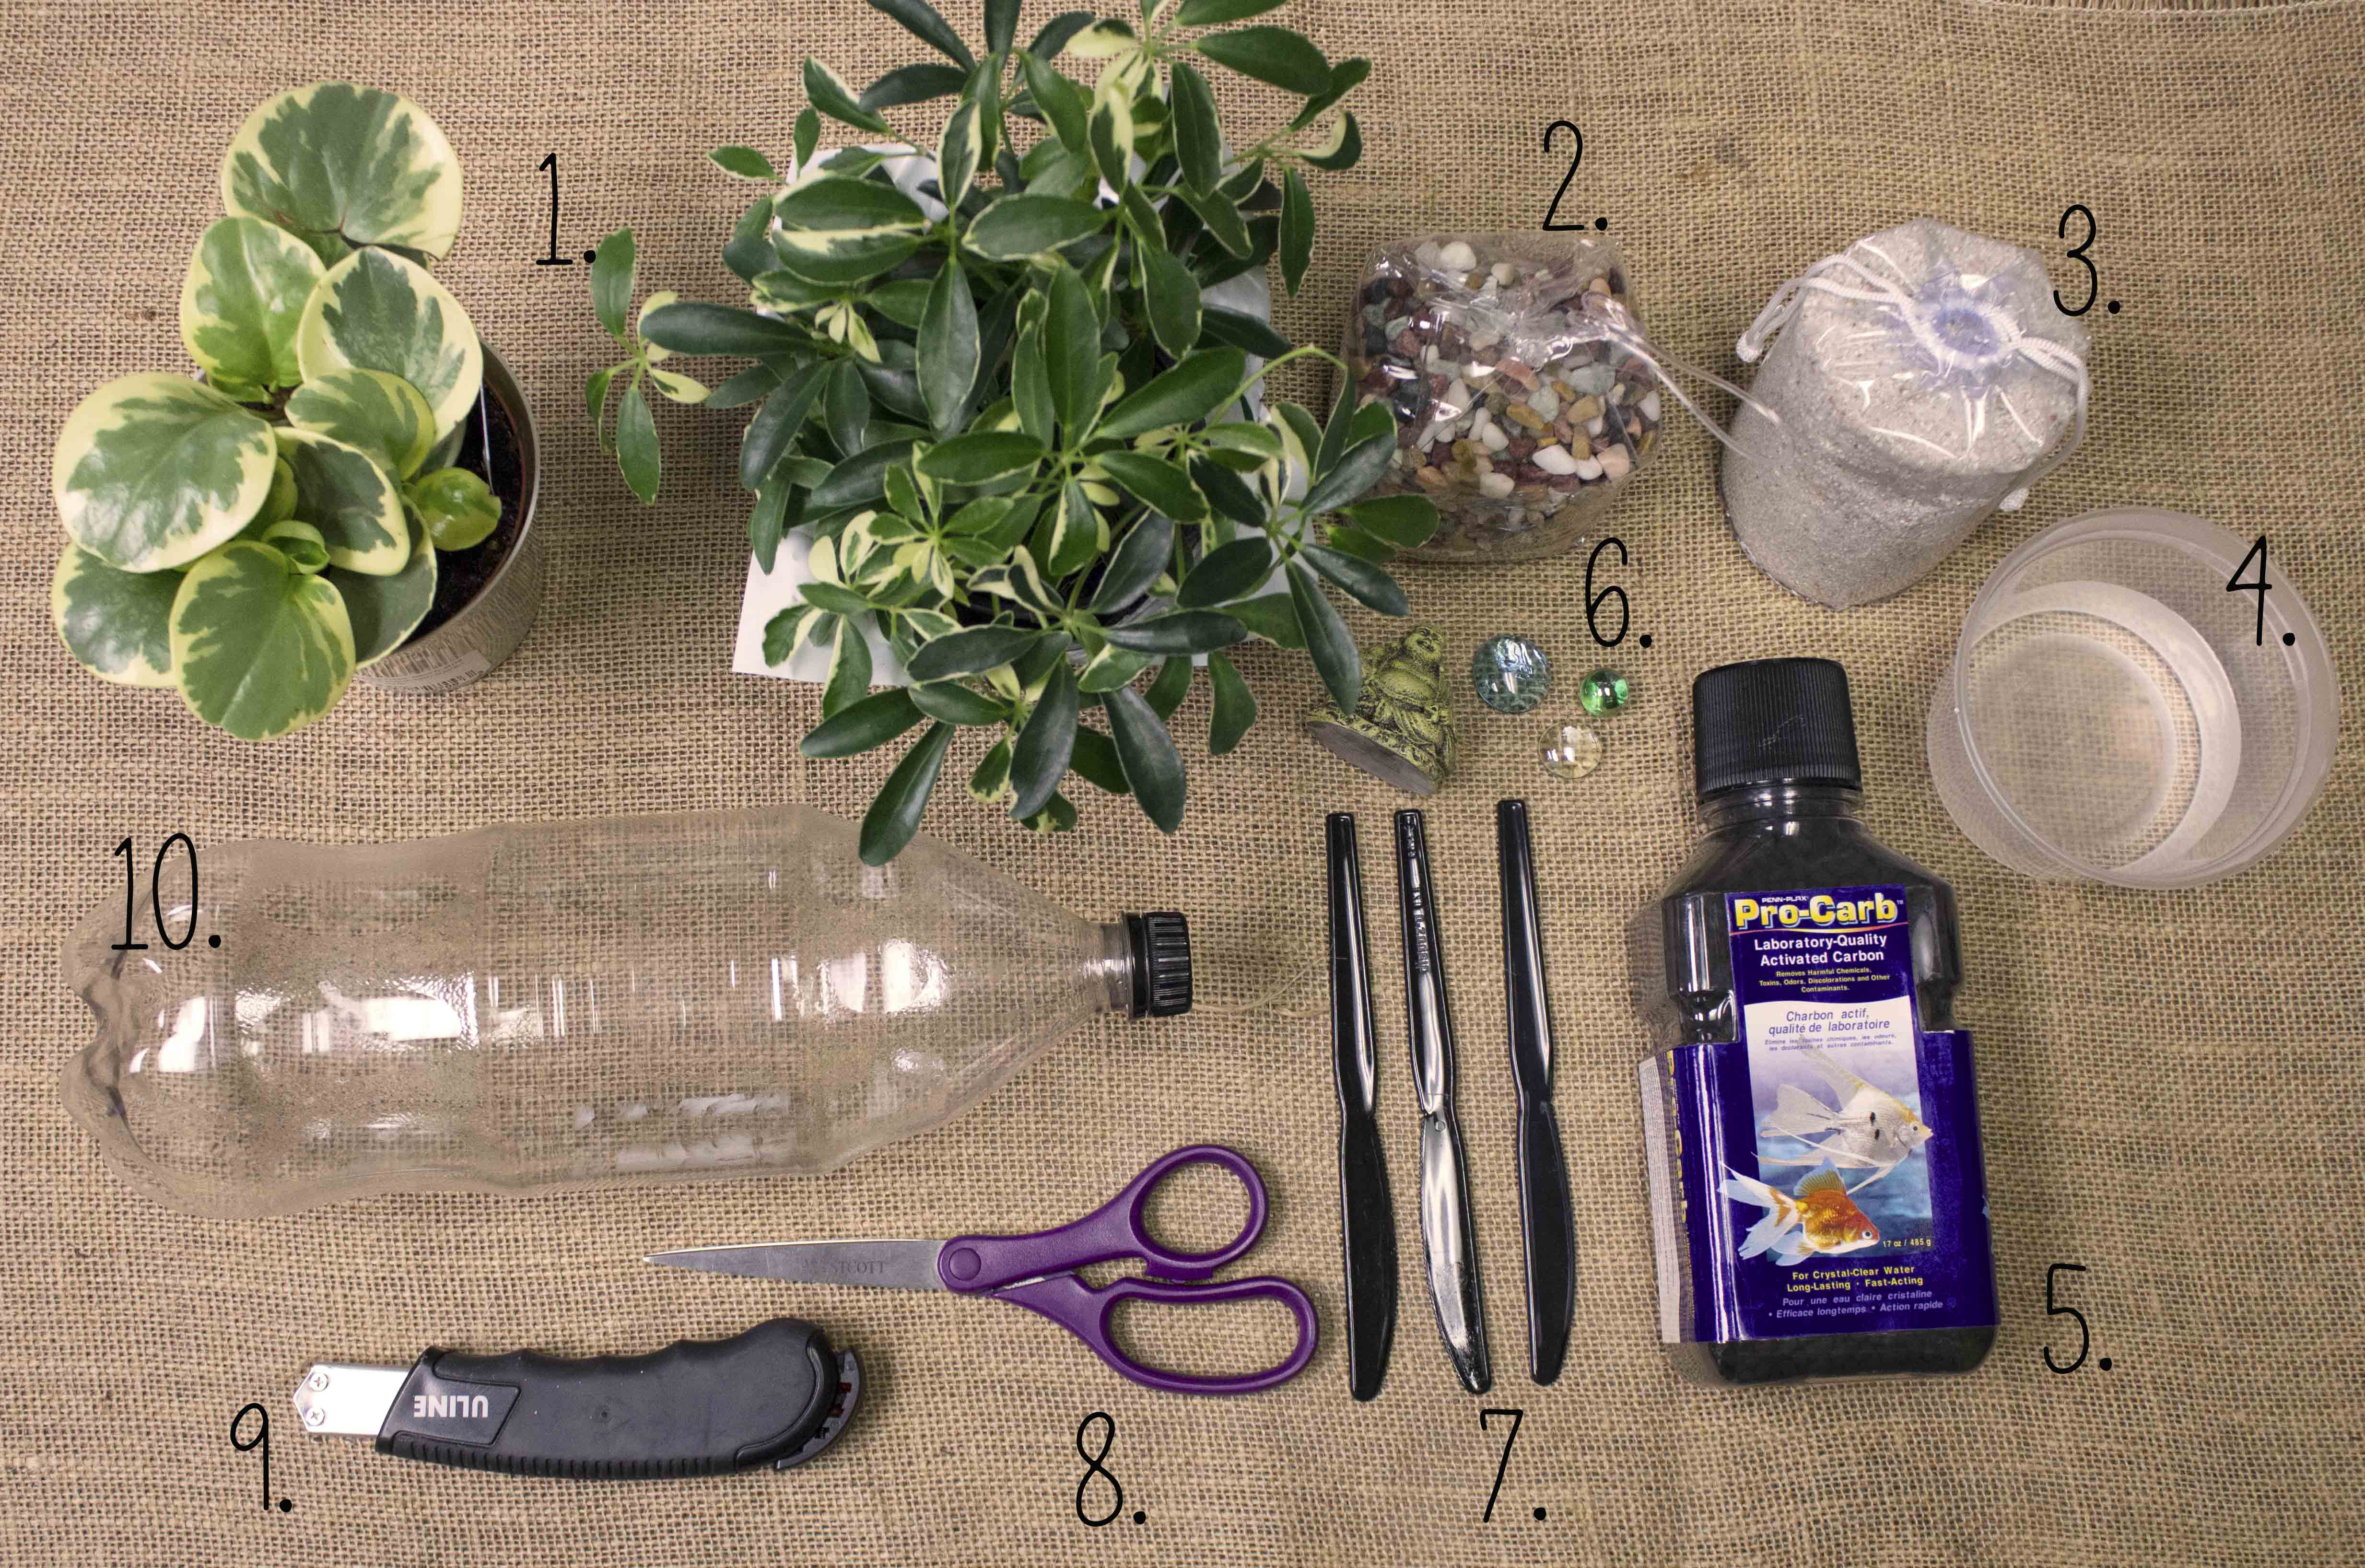 DIY: Recycled Soda Bottle Terrarium - DIY: Recycled Soda Bottle Terrarium